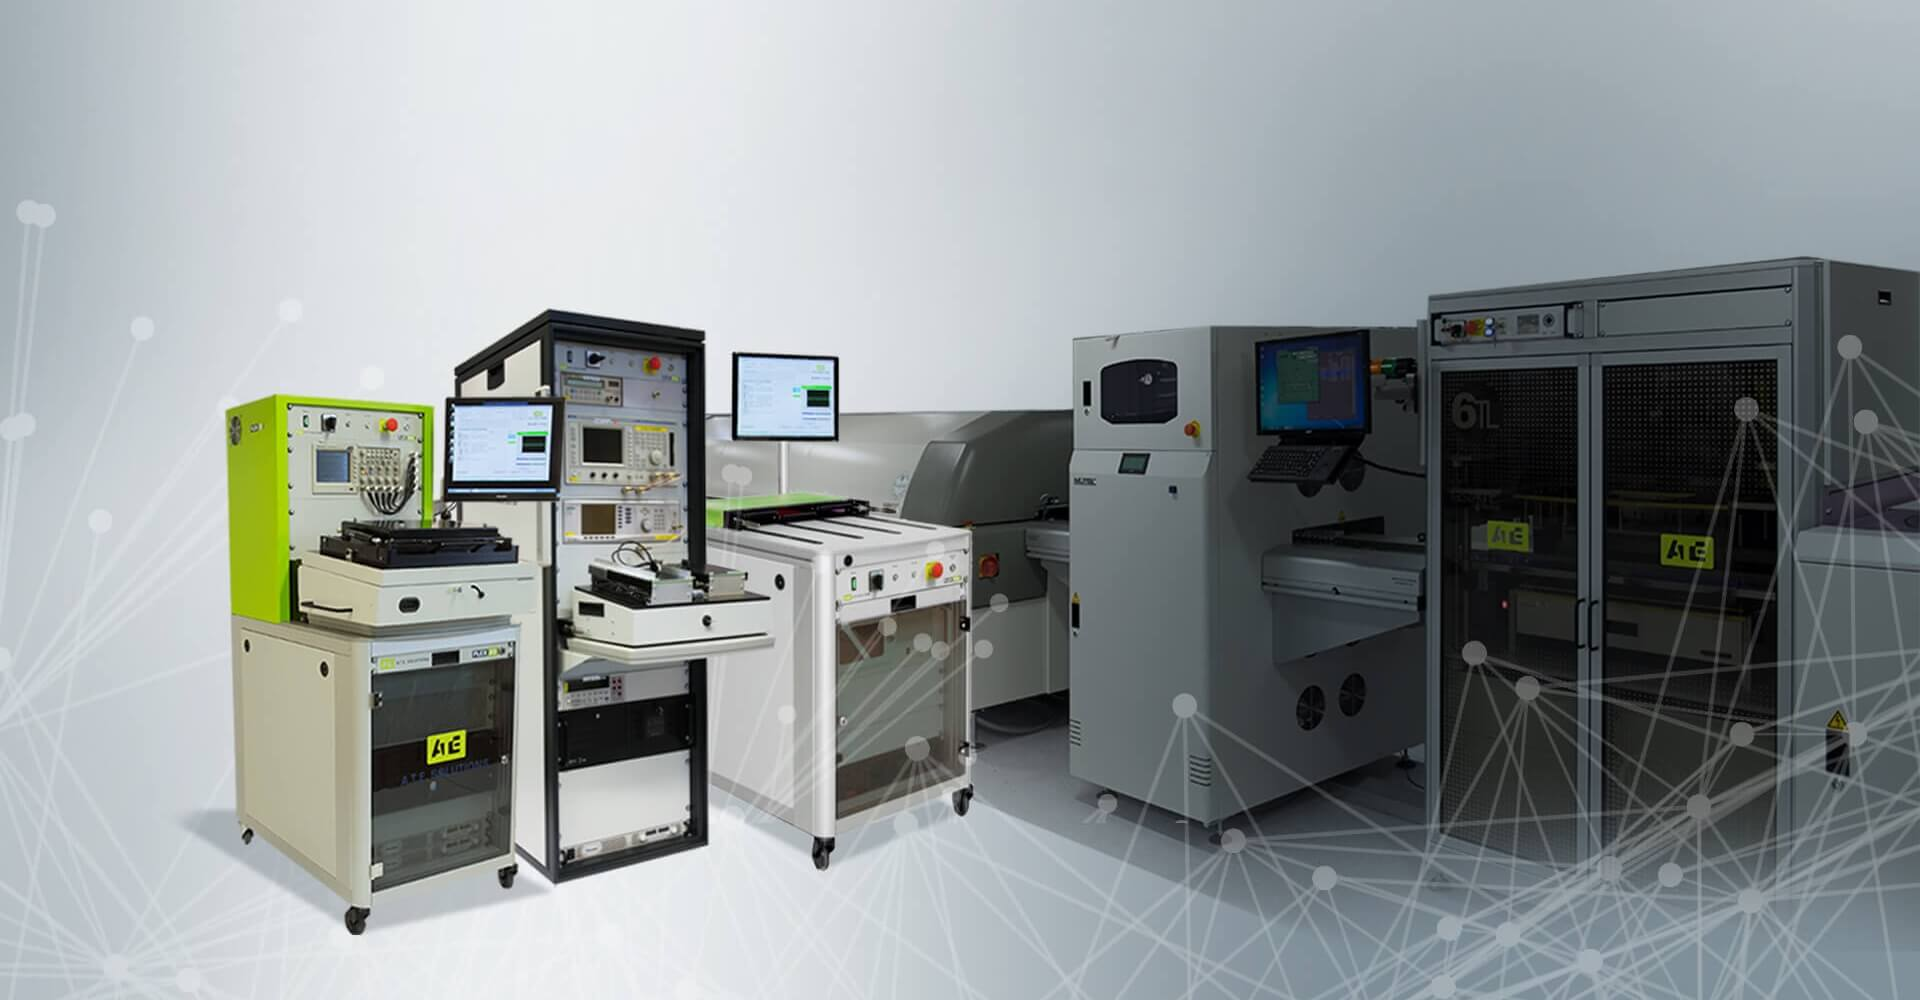 ATE Solutions - Autormatic test equipment, test solutions and test applications provider